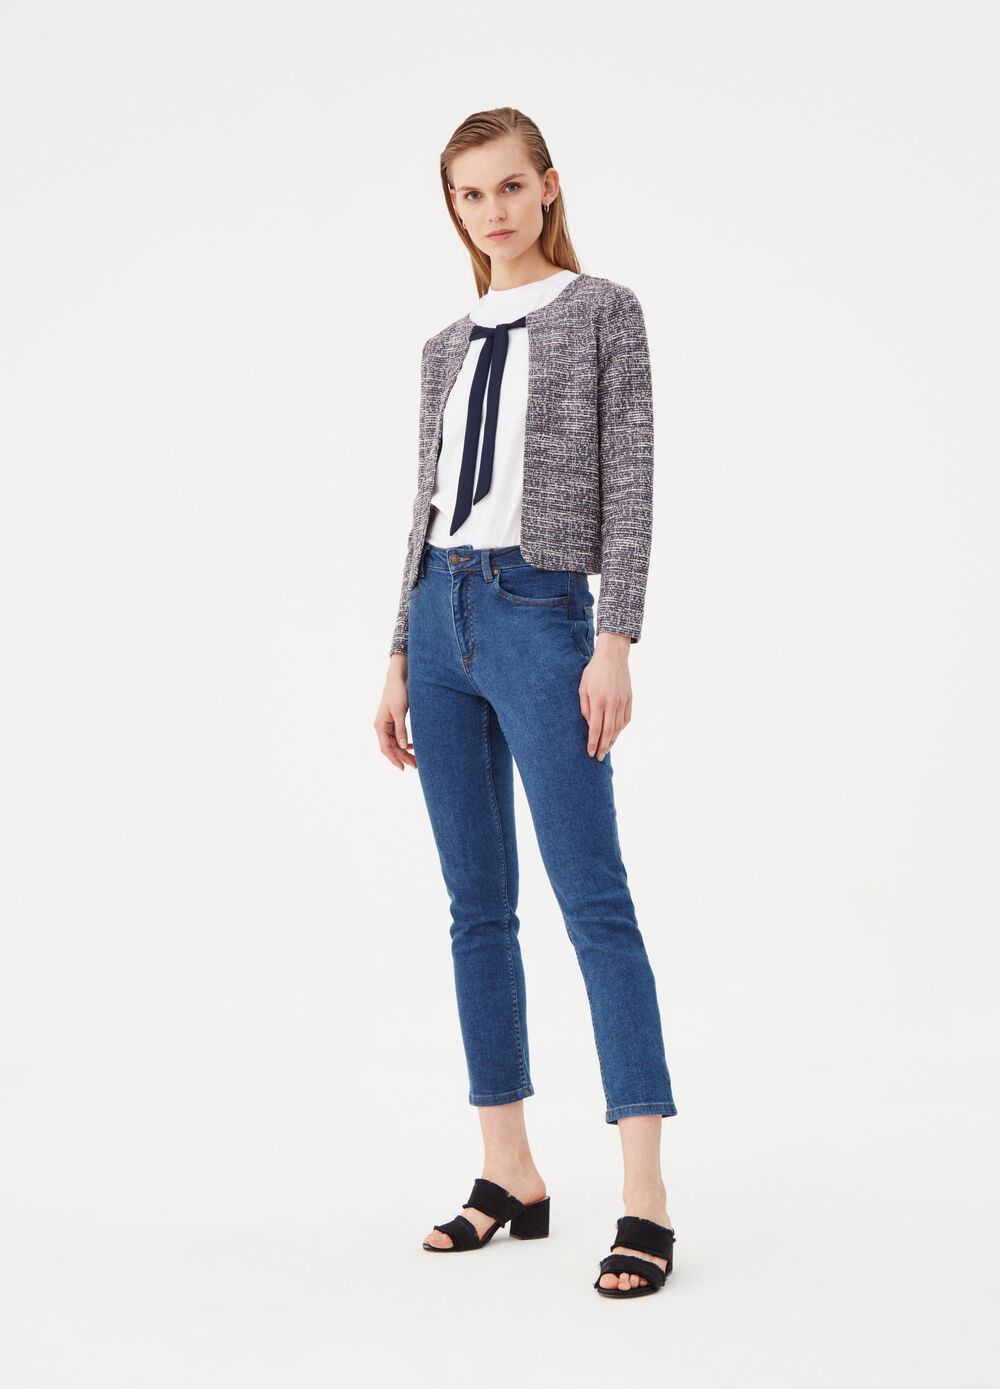 Tweed-effect jacket with knotted laces